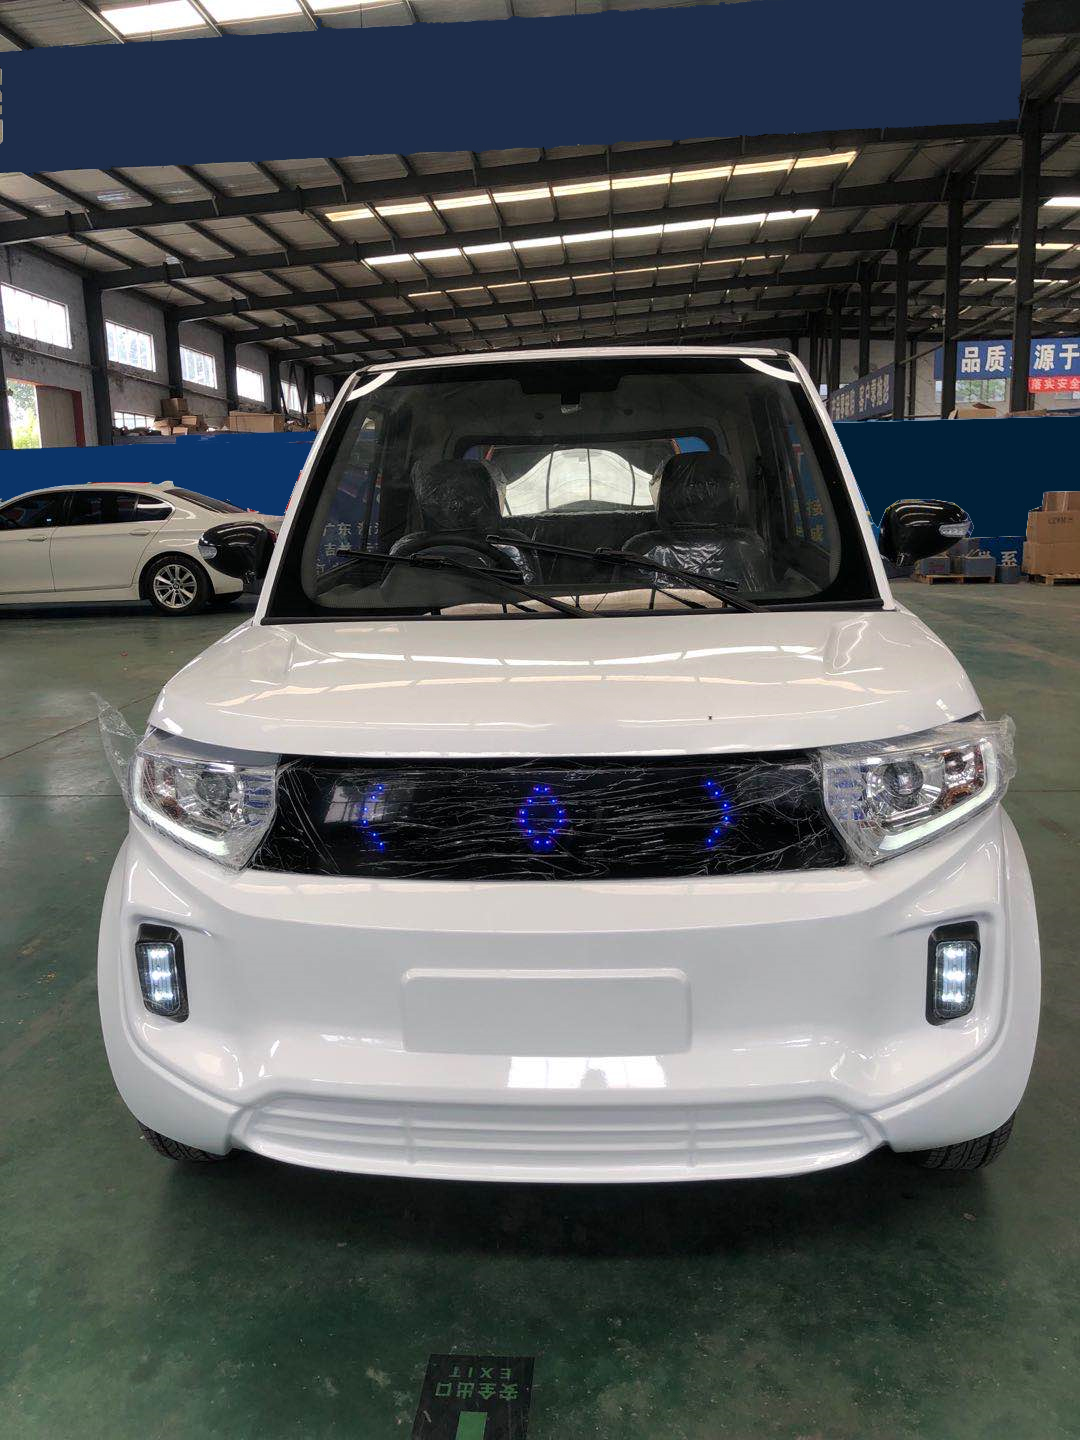 EEC DOT L7E NEW CARS RHD CHEAP MINI ELECTRIC CAR FOR ADULTS MADE IN CHINA RIGHT-HAND DRIVE EUROPE  COCHE CAR